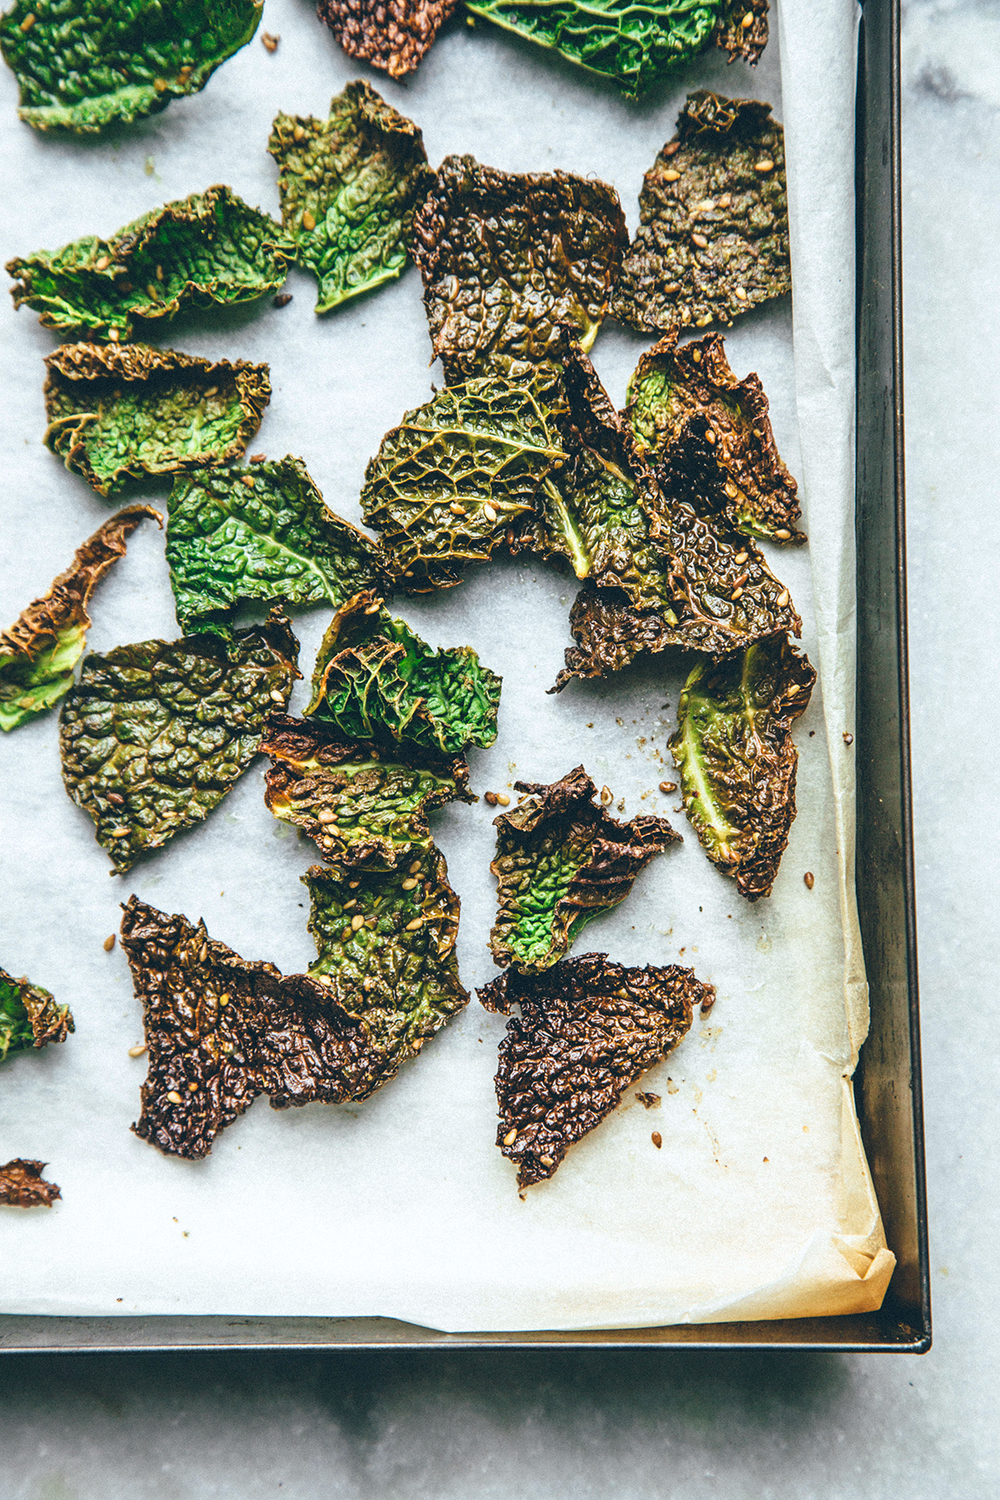 Zaatar is one of my favorite spices and it goes so good with lots of foods. This is a perfect match.